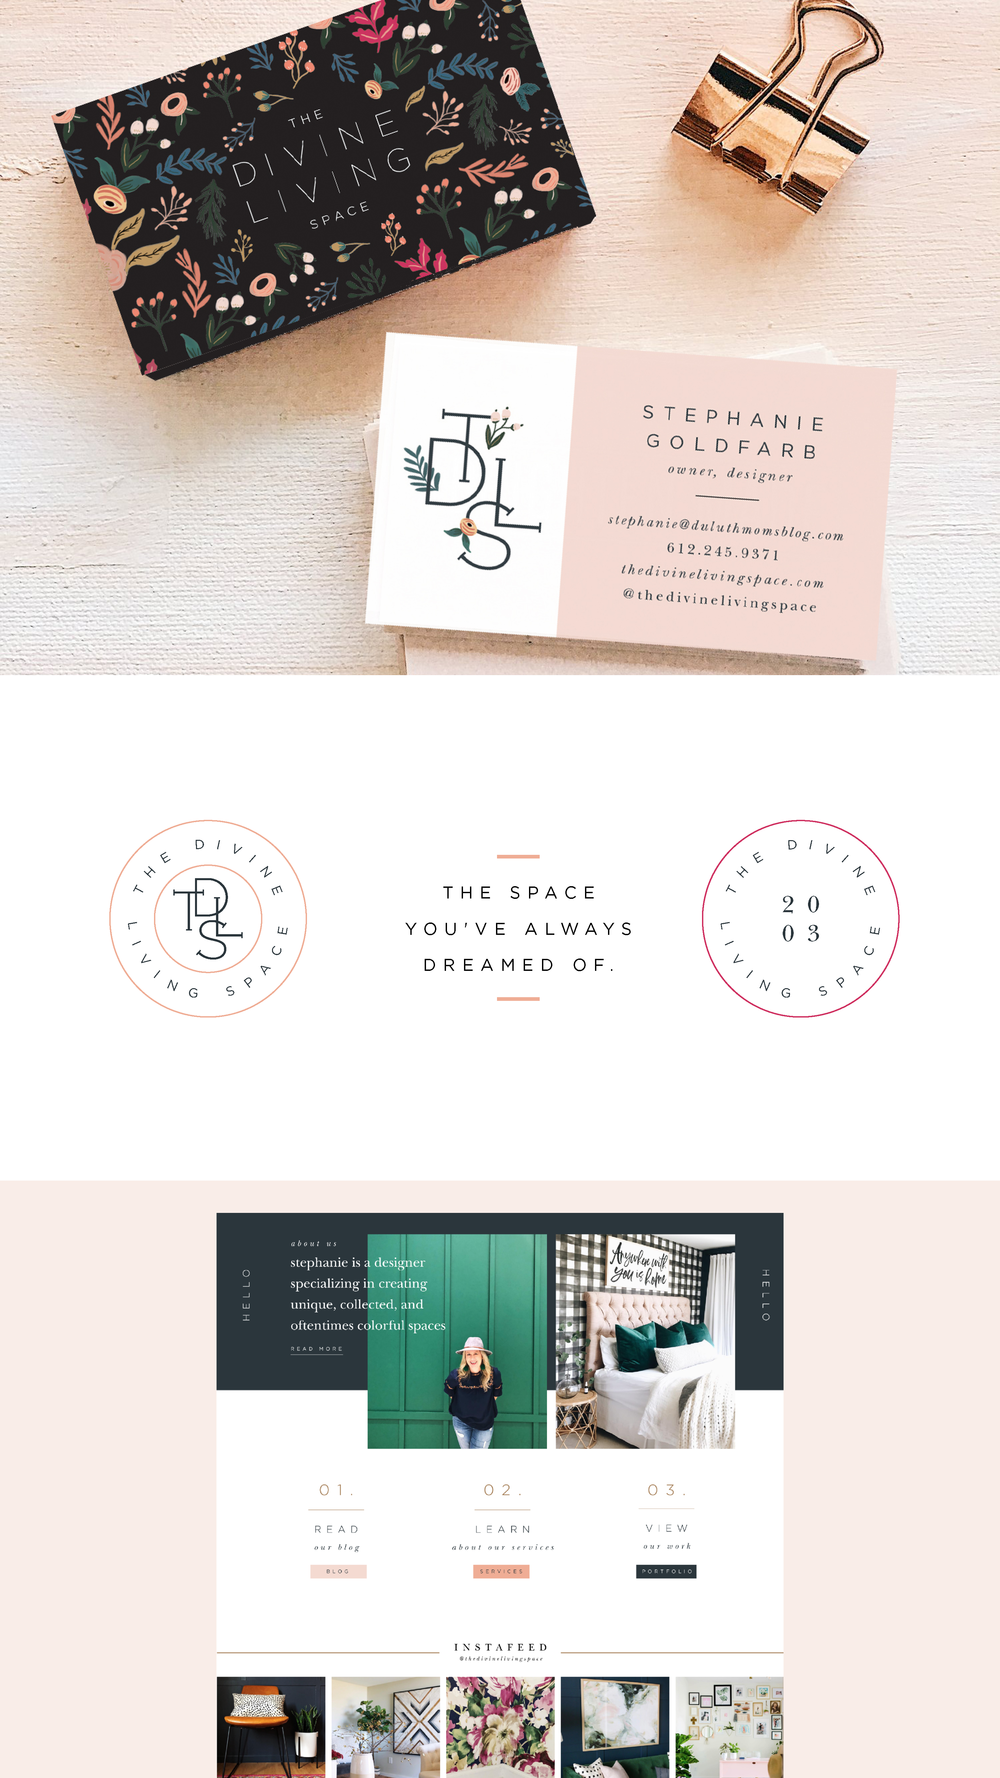 TDLS_brandingdesign_interiordesign_colorful_happy_modern_simple_clean_logo_website.jpg